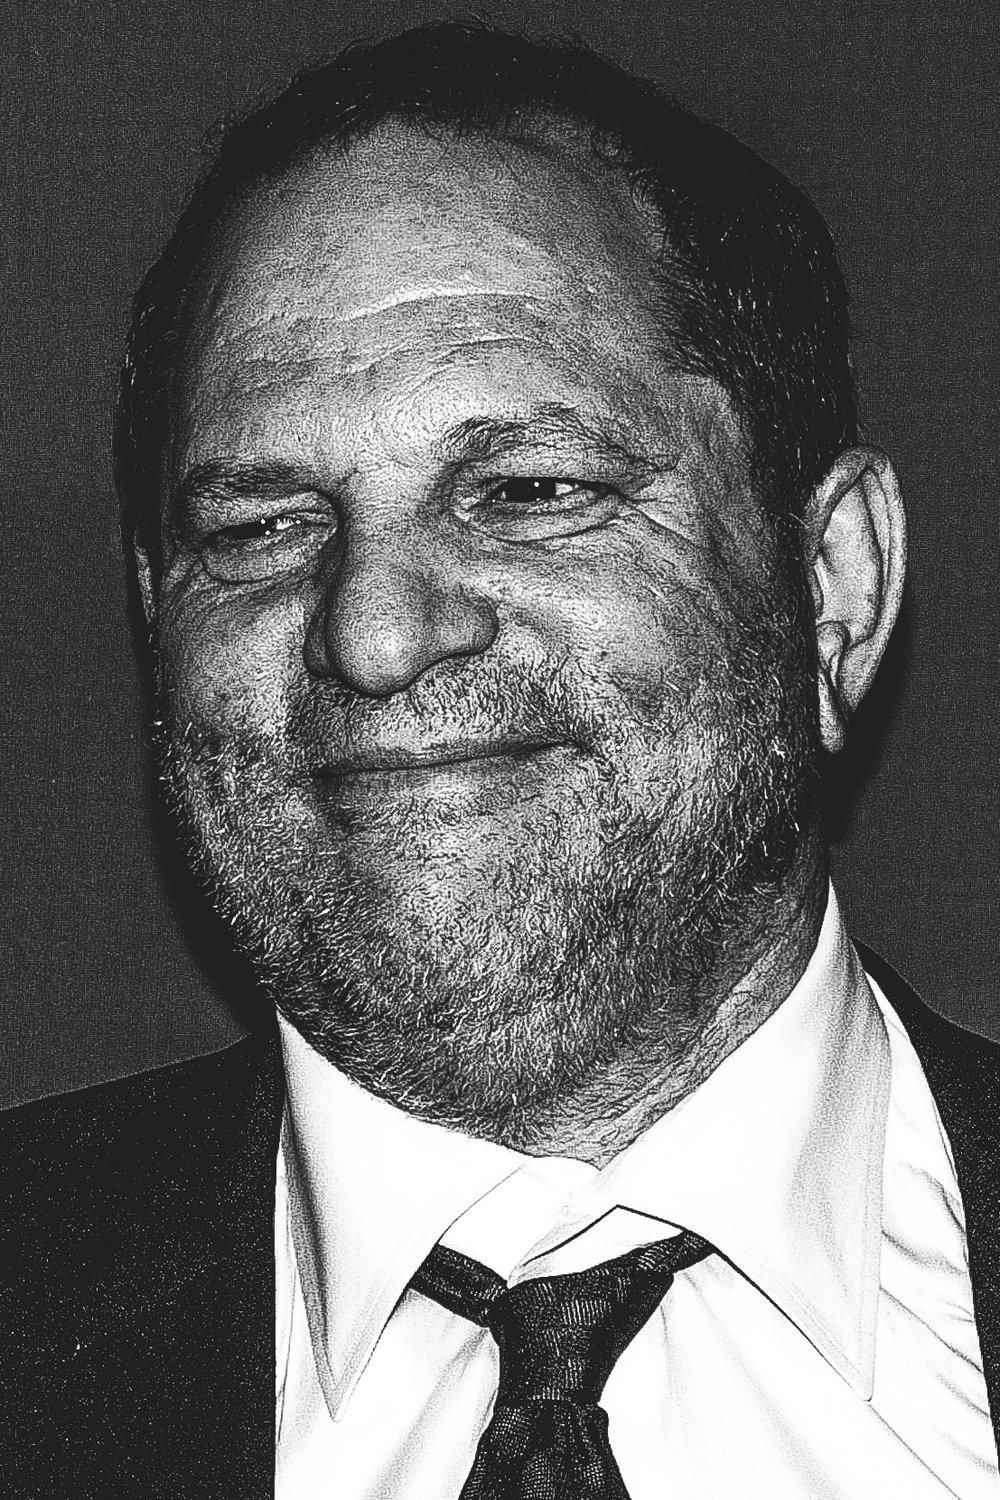 Powerful Hollywood producer Harvey Weinstein has recently fallen from grace in the face of dozens of sexual assault allegations.